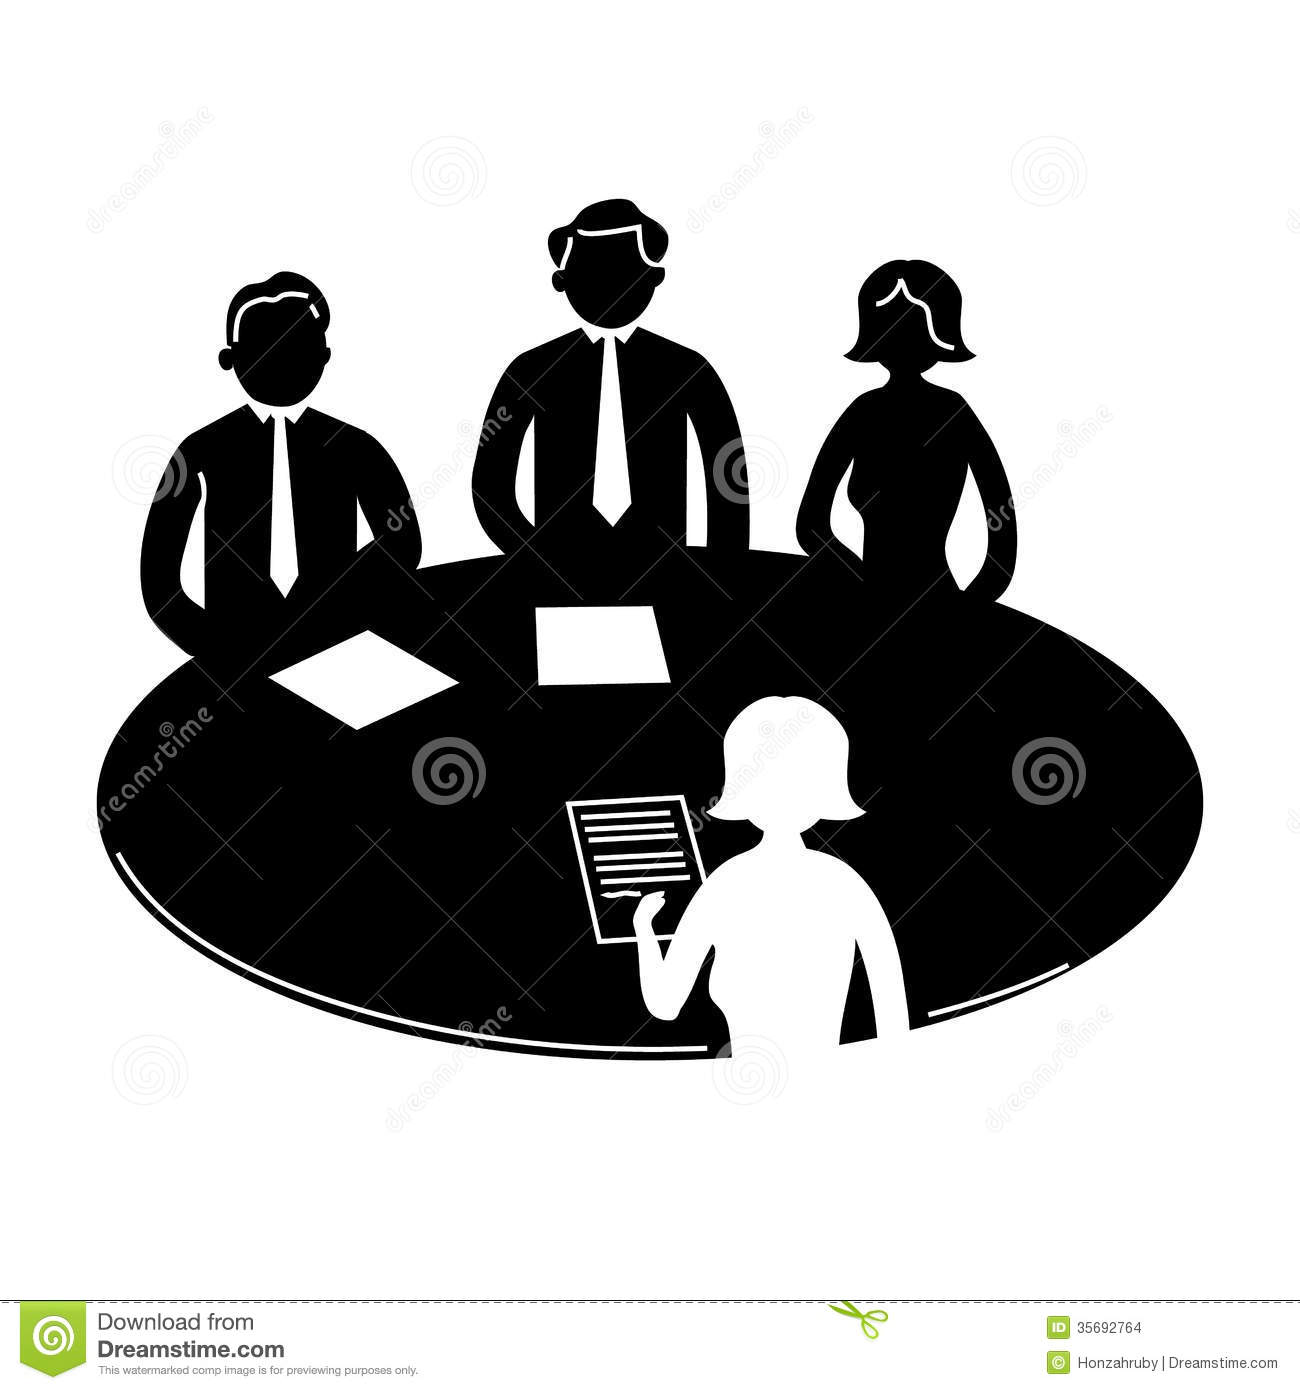 Infographic Business Icon People Meeting Table Black